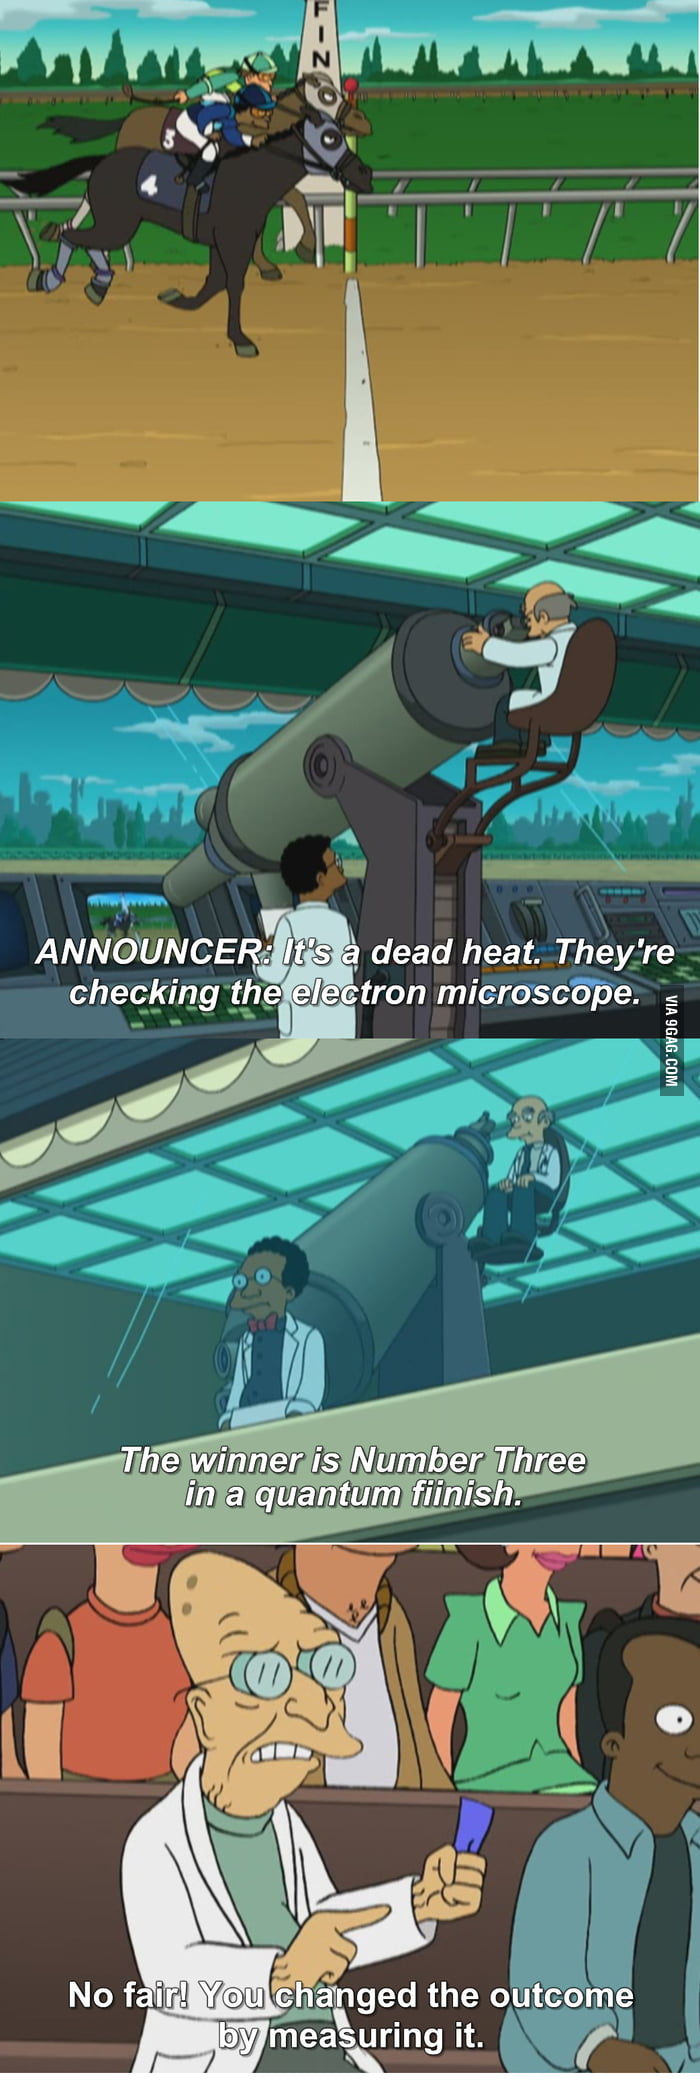 Futurama and briefly Heisenberg Principle